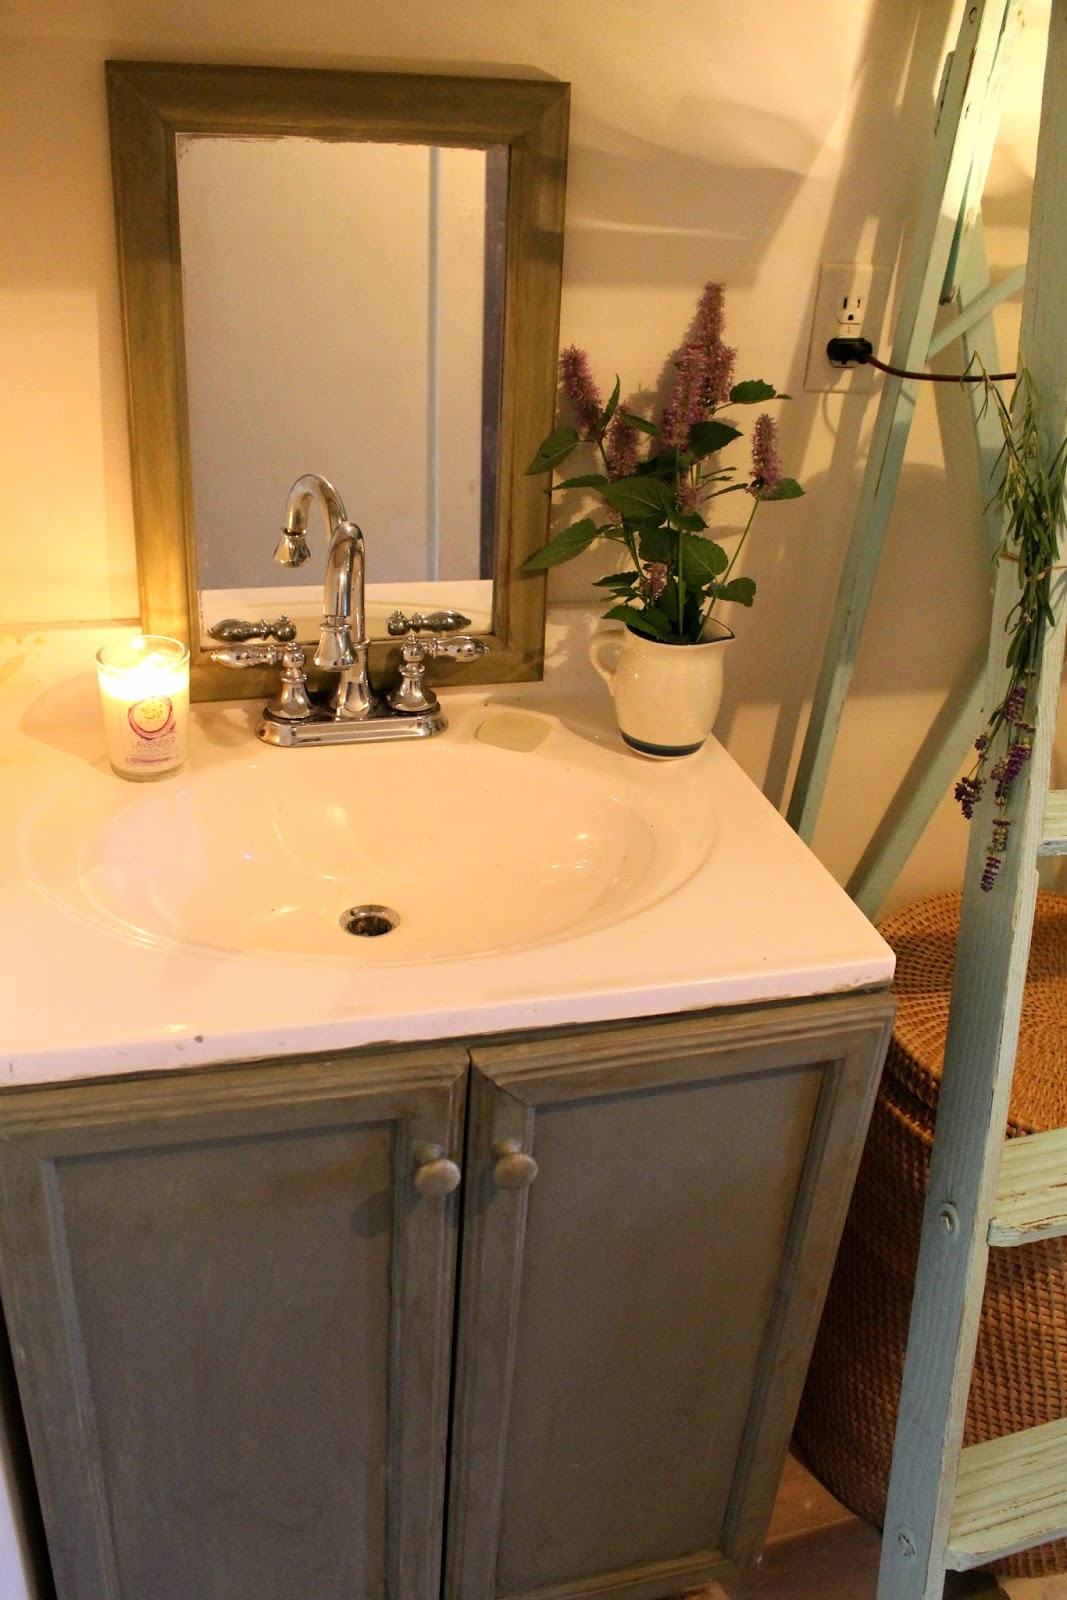 Annie sloan chalk paint bathroom cabinets - Annie Sloan Chalk Paint Cabinet And Floor Small Space Makeover